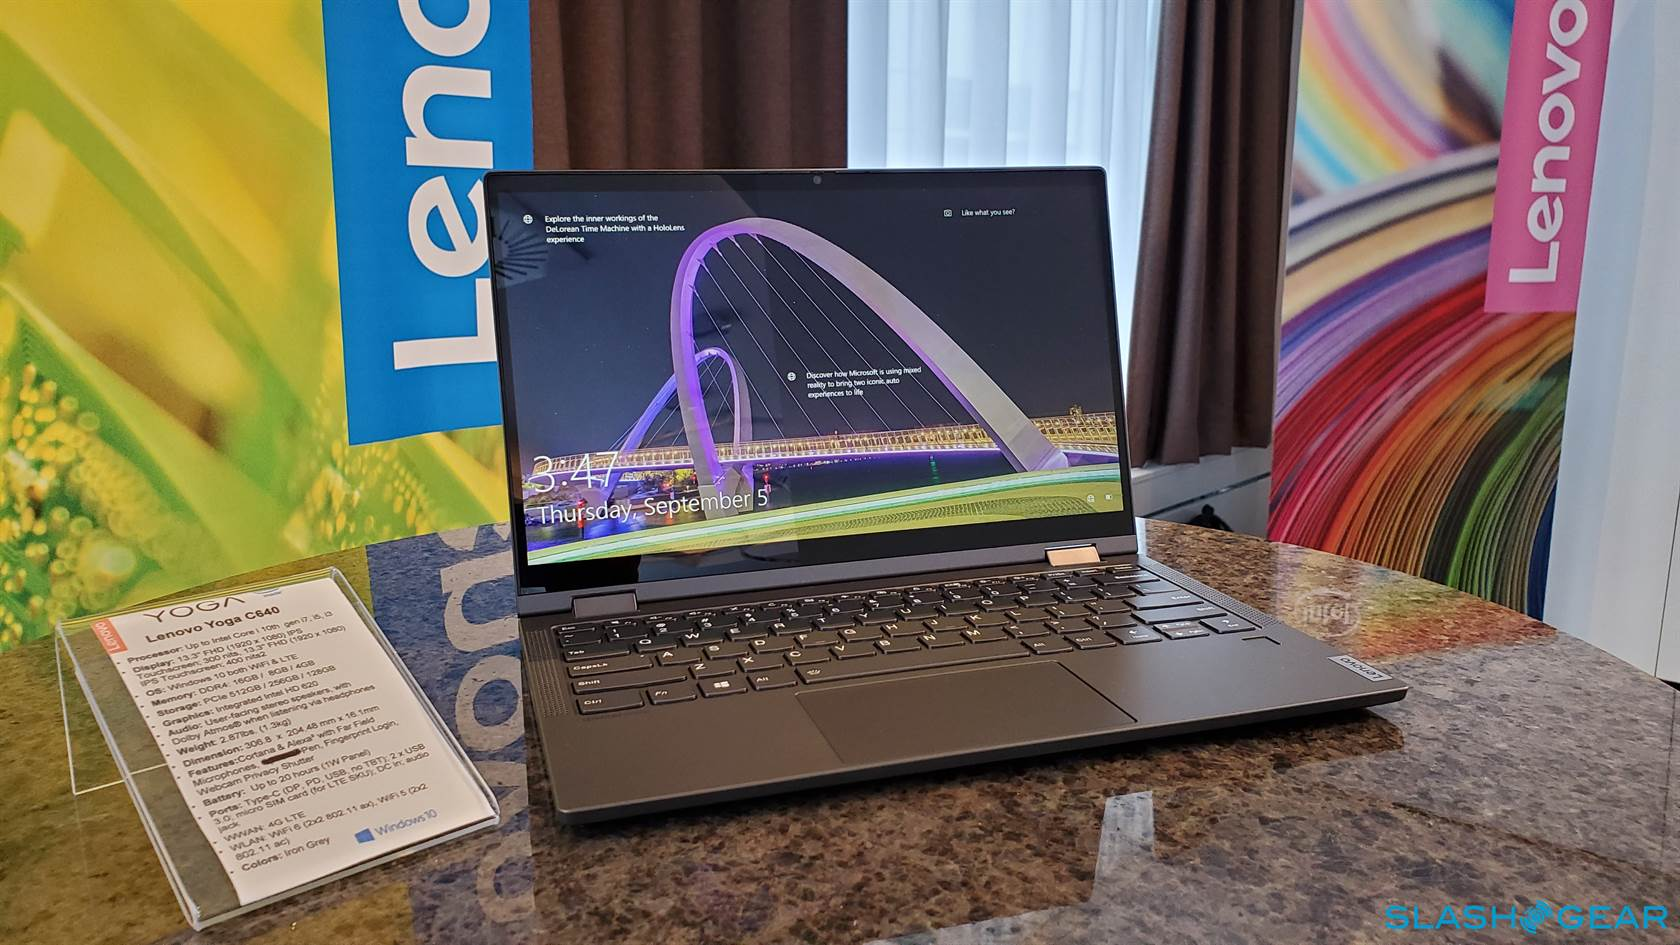 Lenovo Yoga C940 And C740 Offer Flexibility 4k Hdr And 10th Gen Intel Slashgear